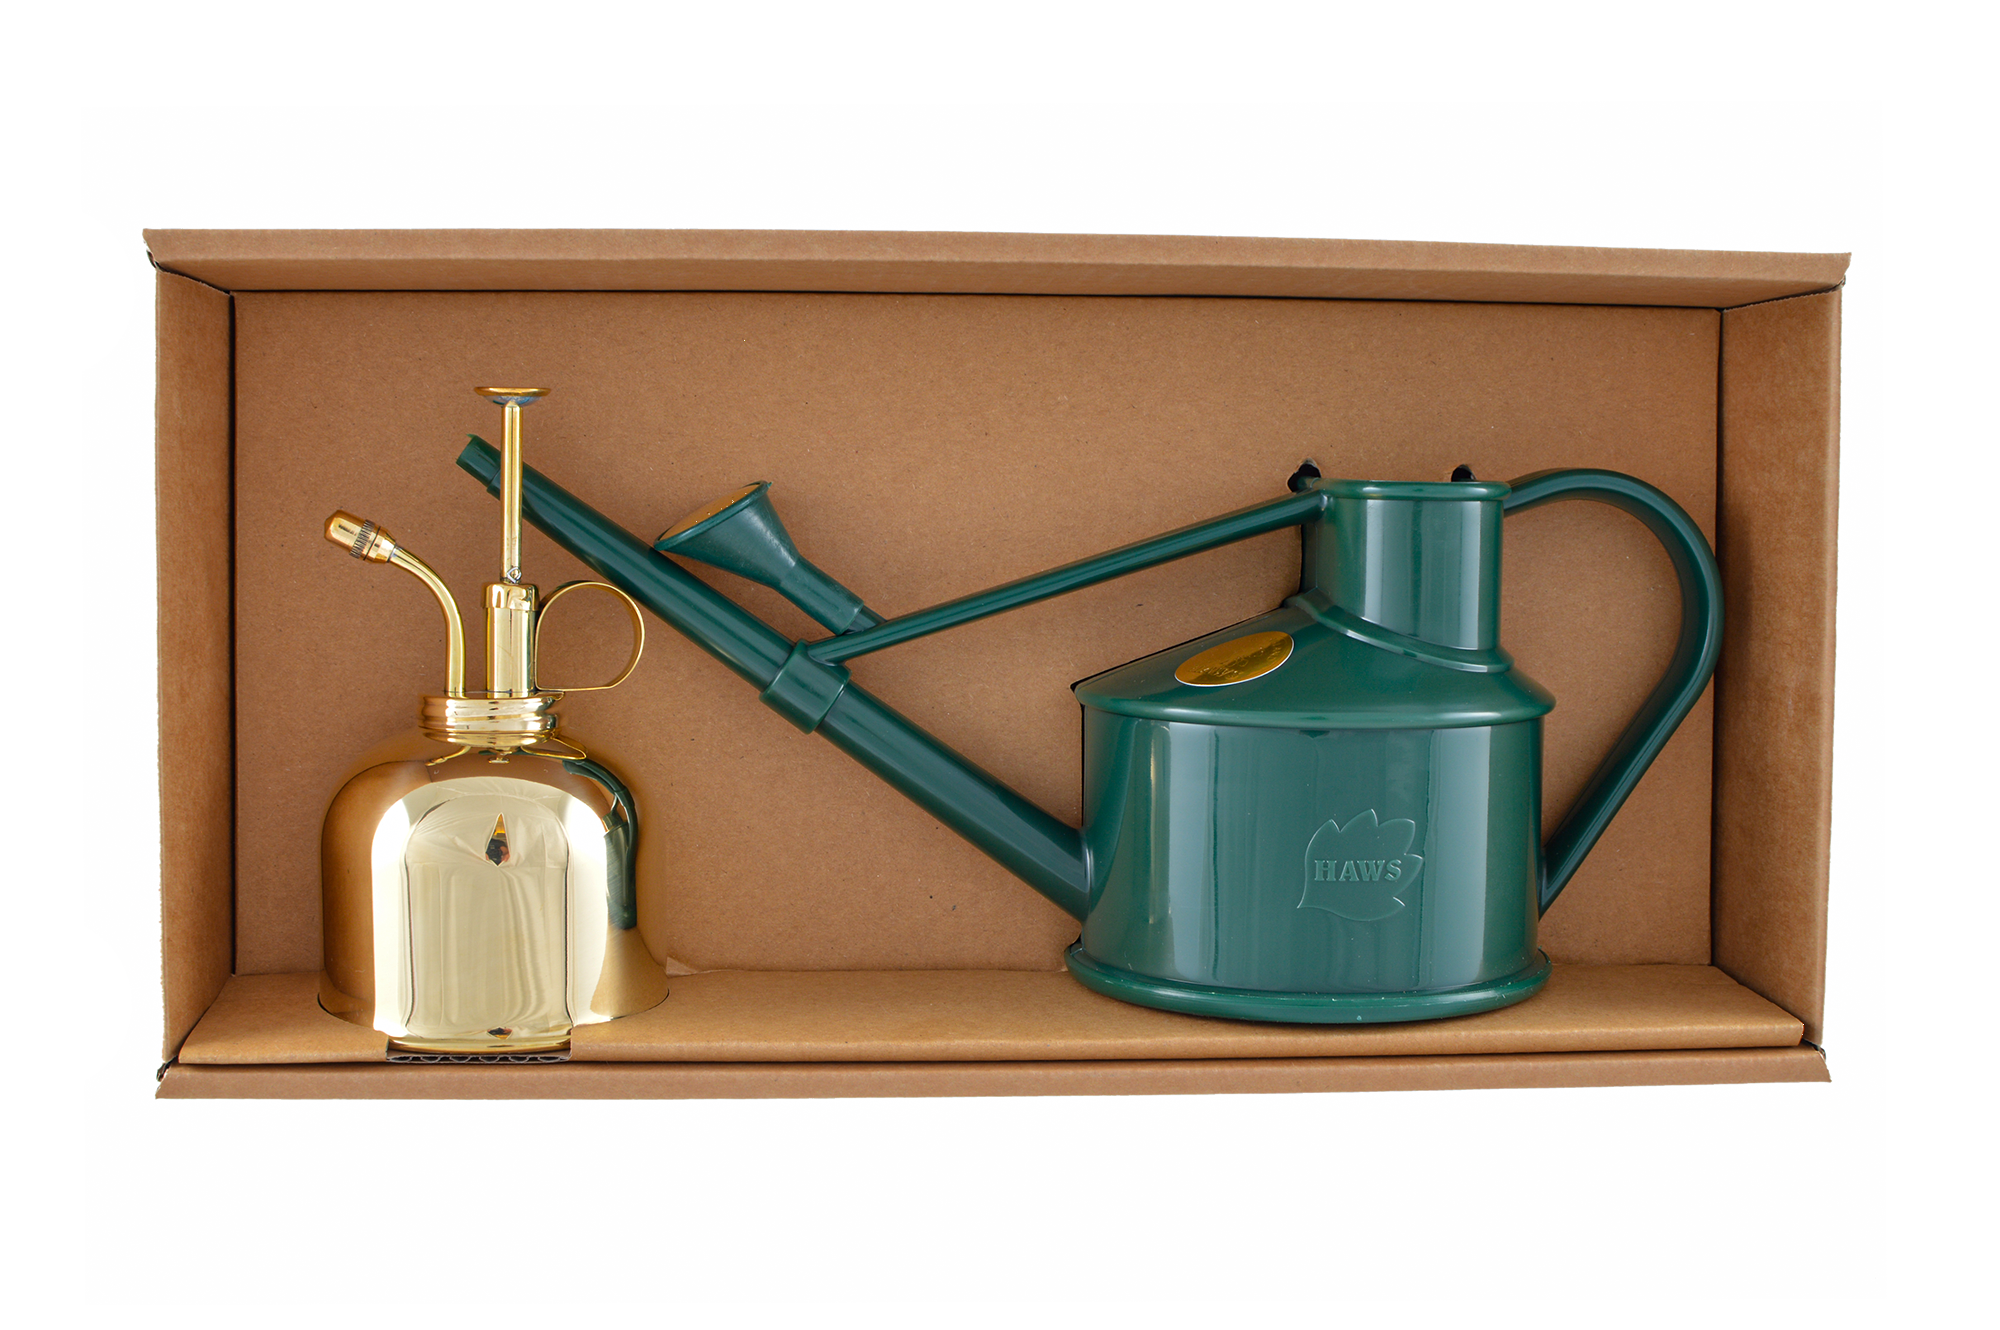 Green Langley Sprinkler & Brass Smethwick Spritzer, haws watering can